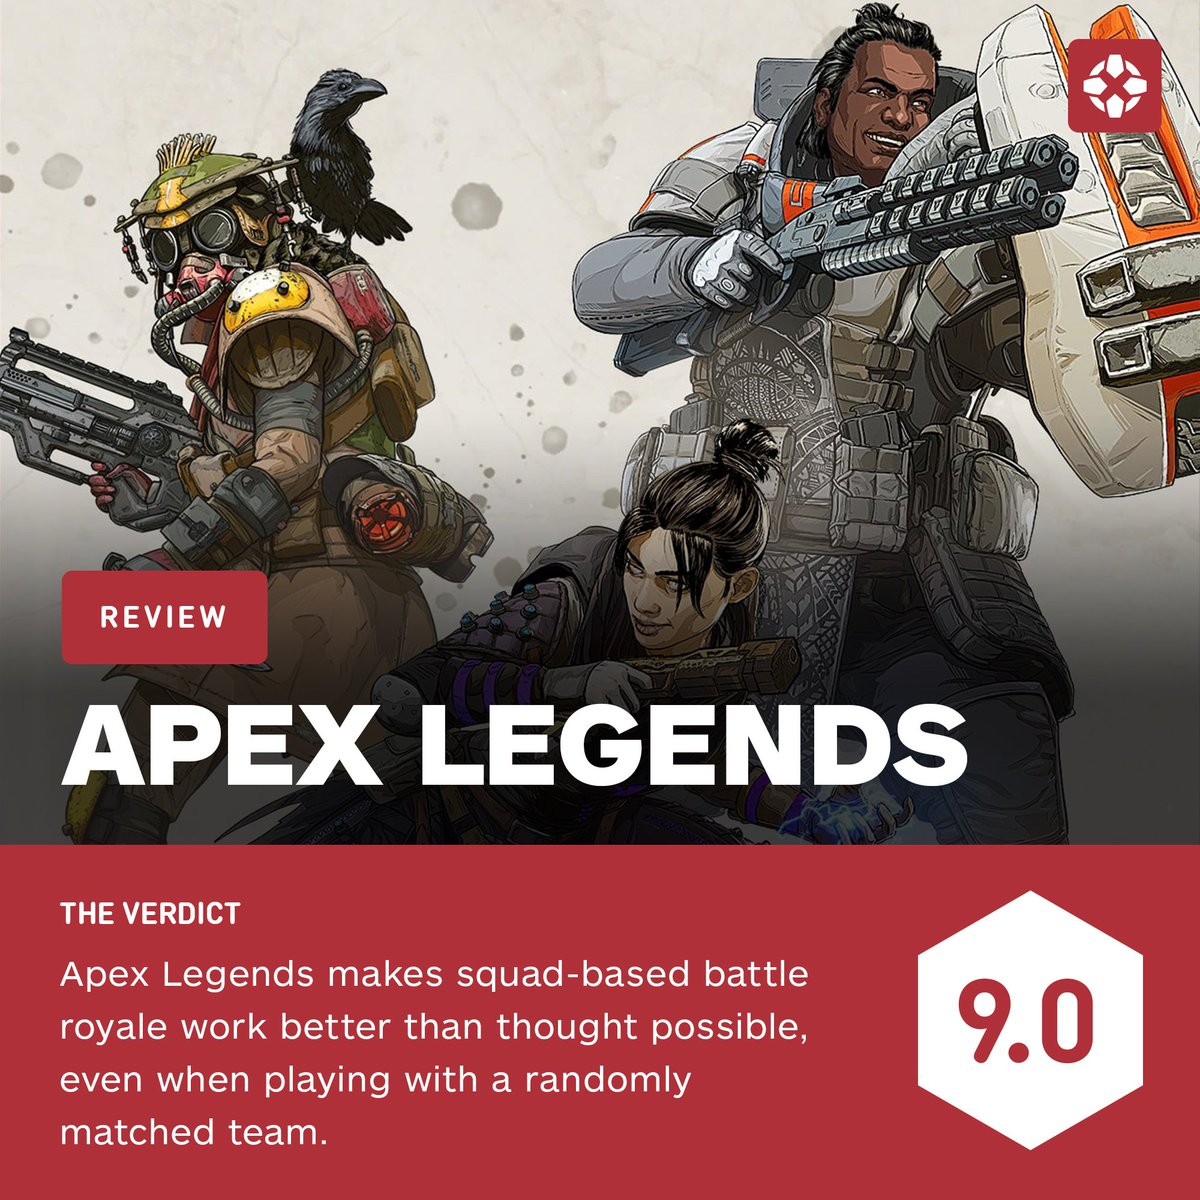 Apex Legends is squad-based battle royale done right, complete with cool heroes, a superb communication system, and polished mechanics.